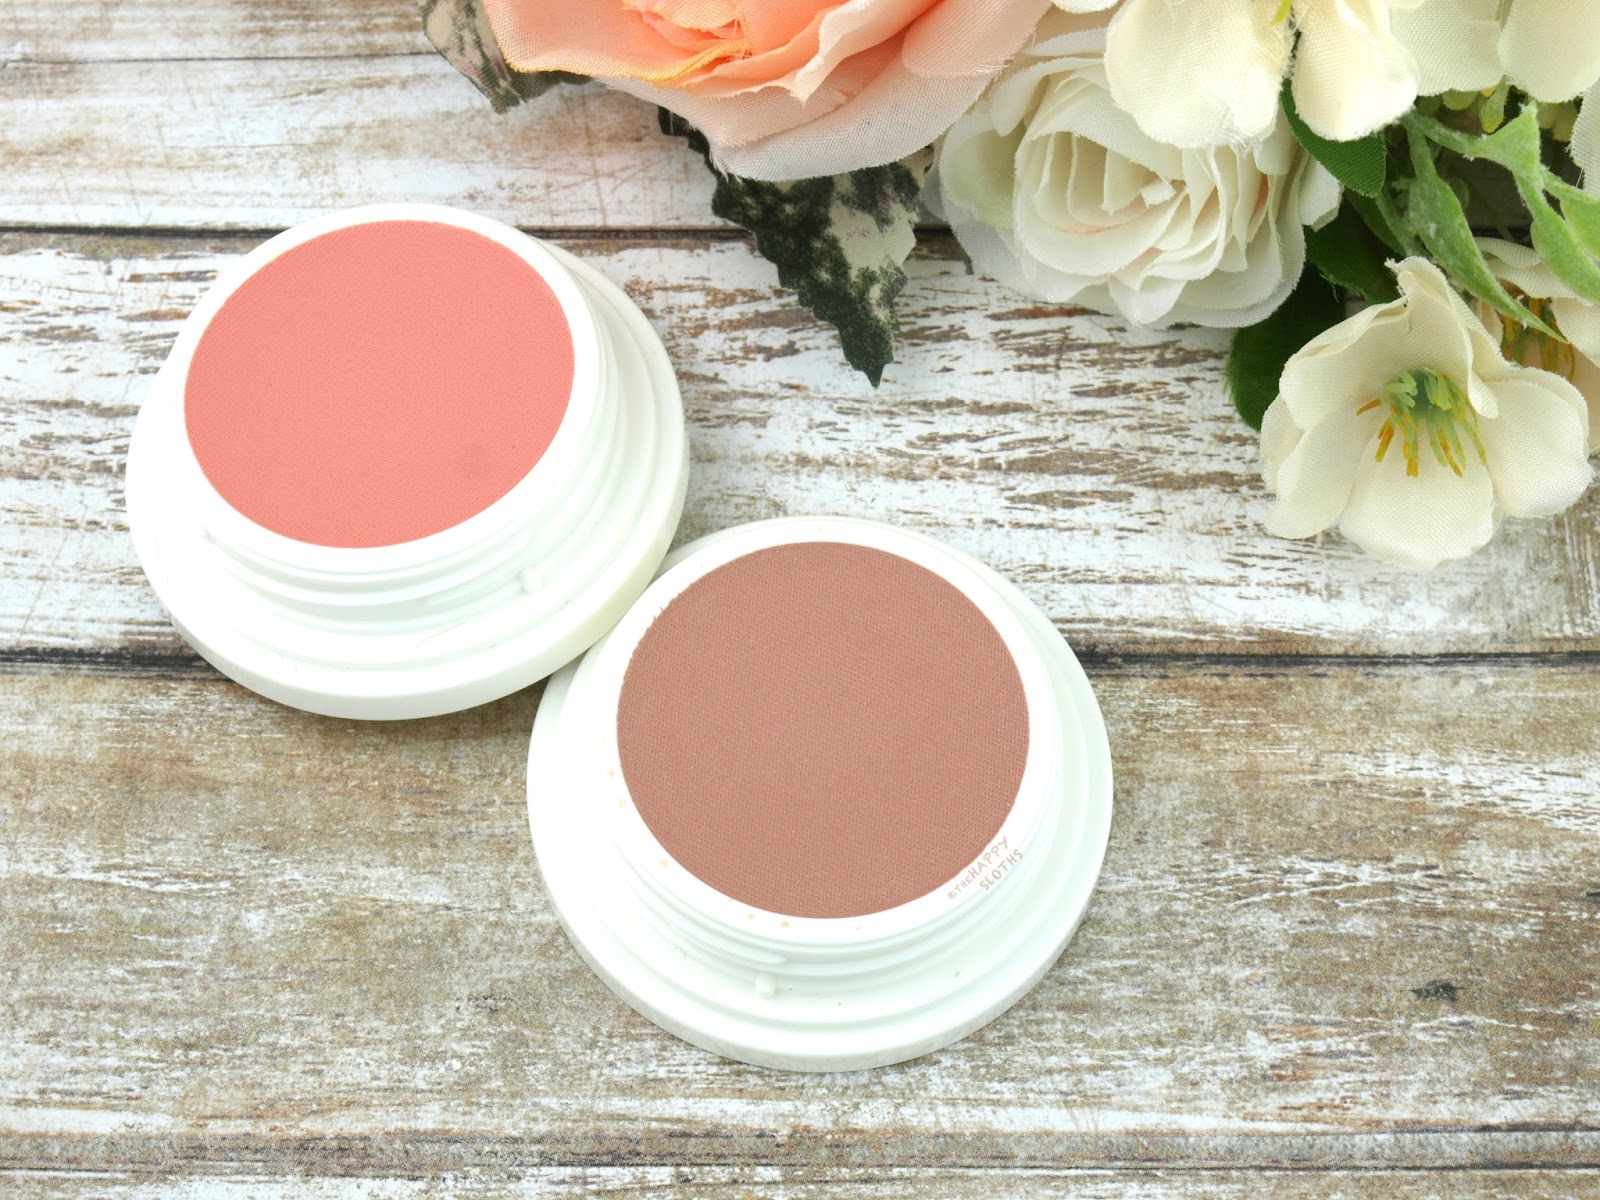 """Paul & Joe Summer 2017 Gel Blush in """"002 Monde Imaginaire"""" & """"003 Onirique"""": Review and Swatches"""